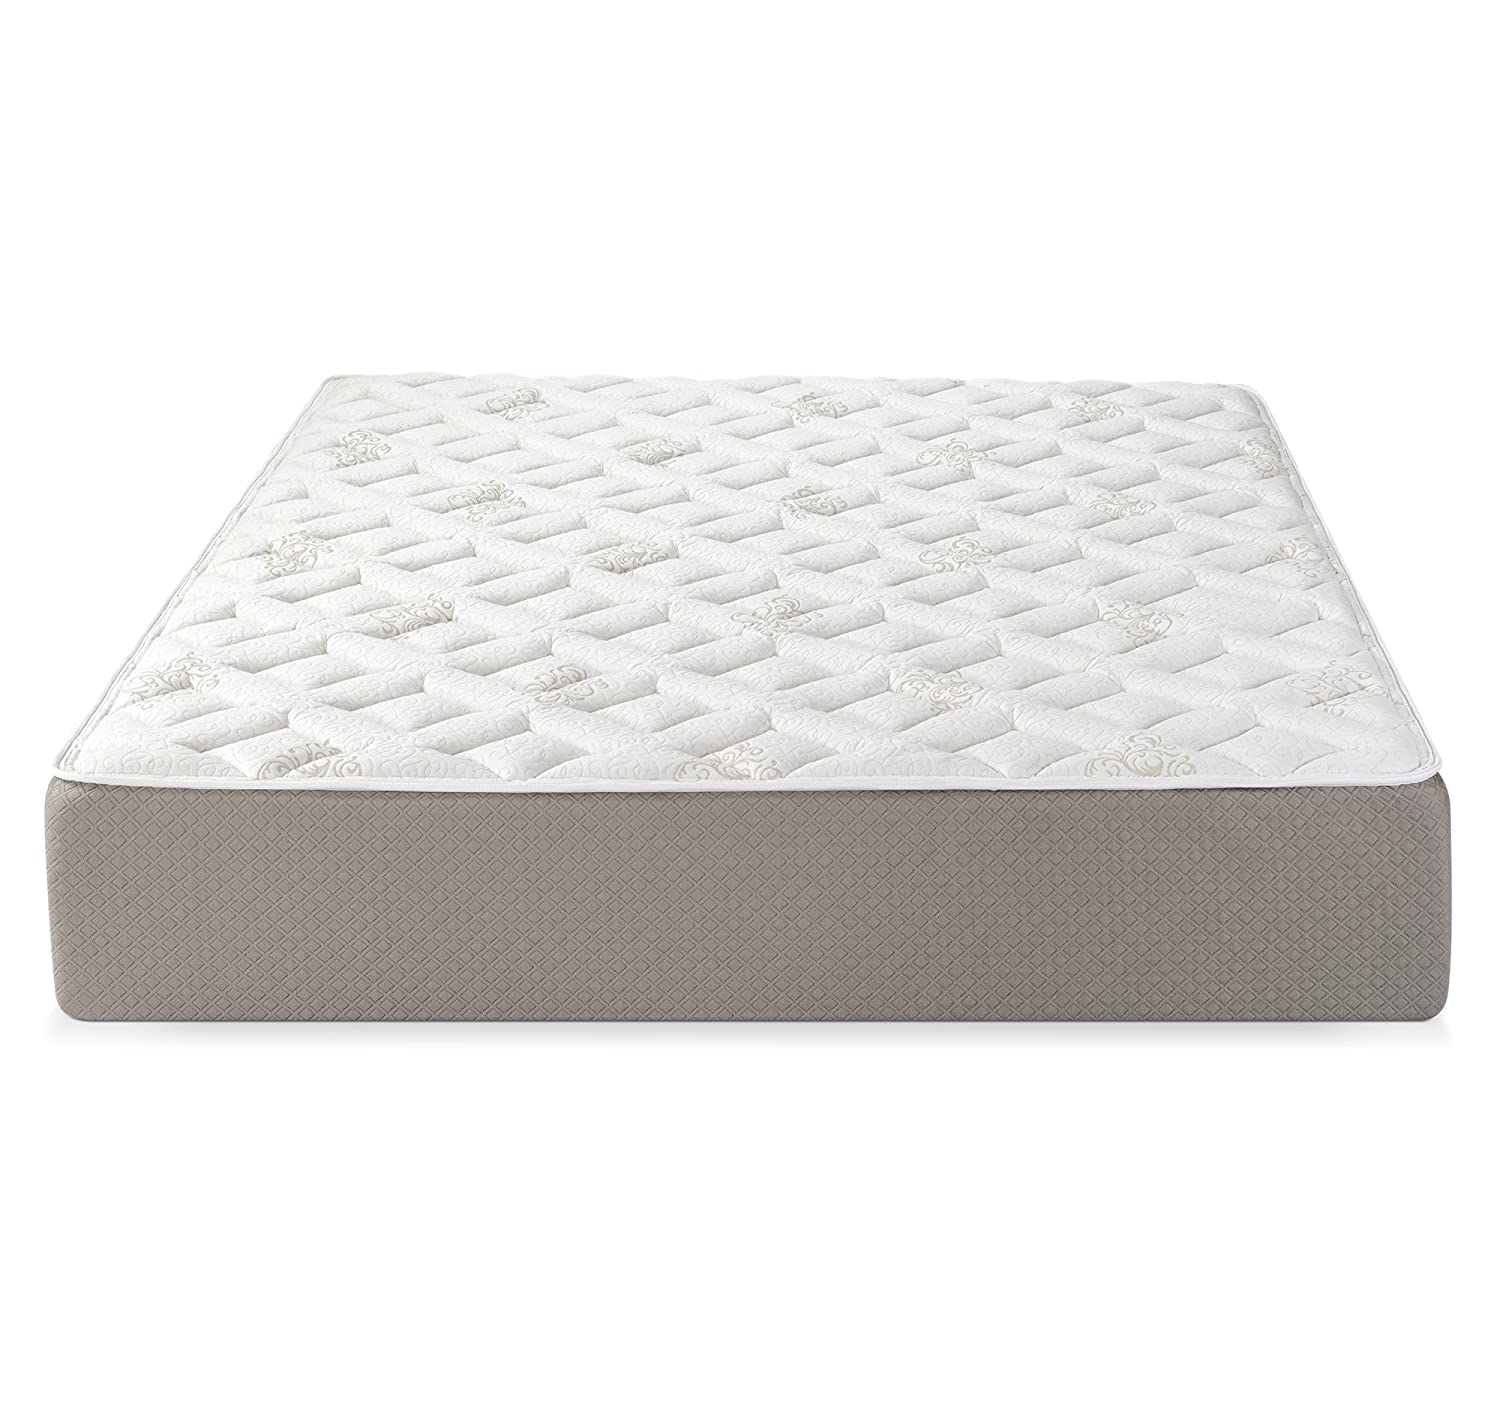 "Amazon.com: Serenia Sleep 12"" Quilted Sculpted Gel Memory Foam Mattress,  Queen, White/Off-White/Brown: Kitchen & Dining"